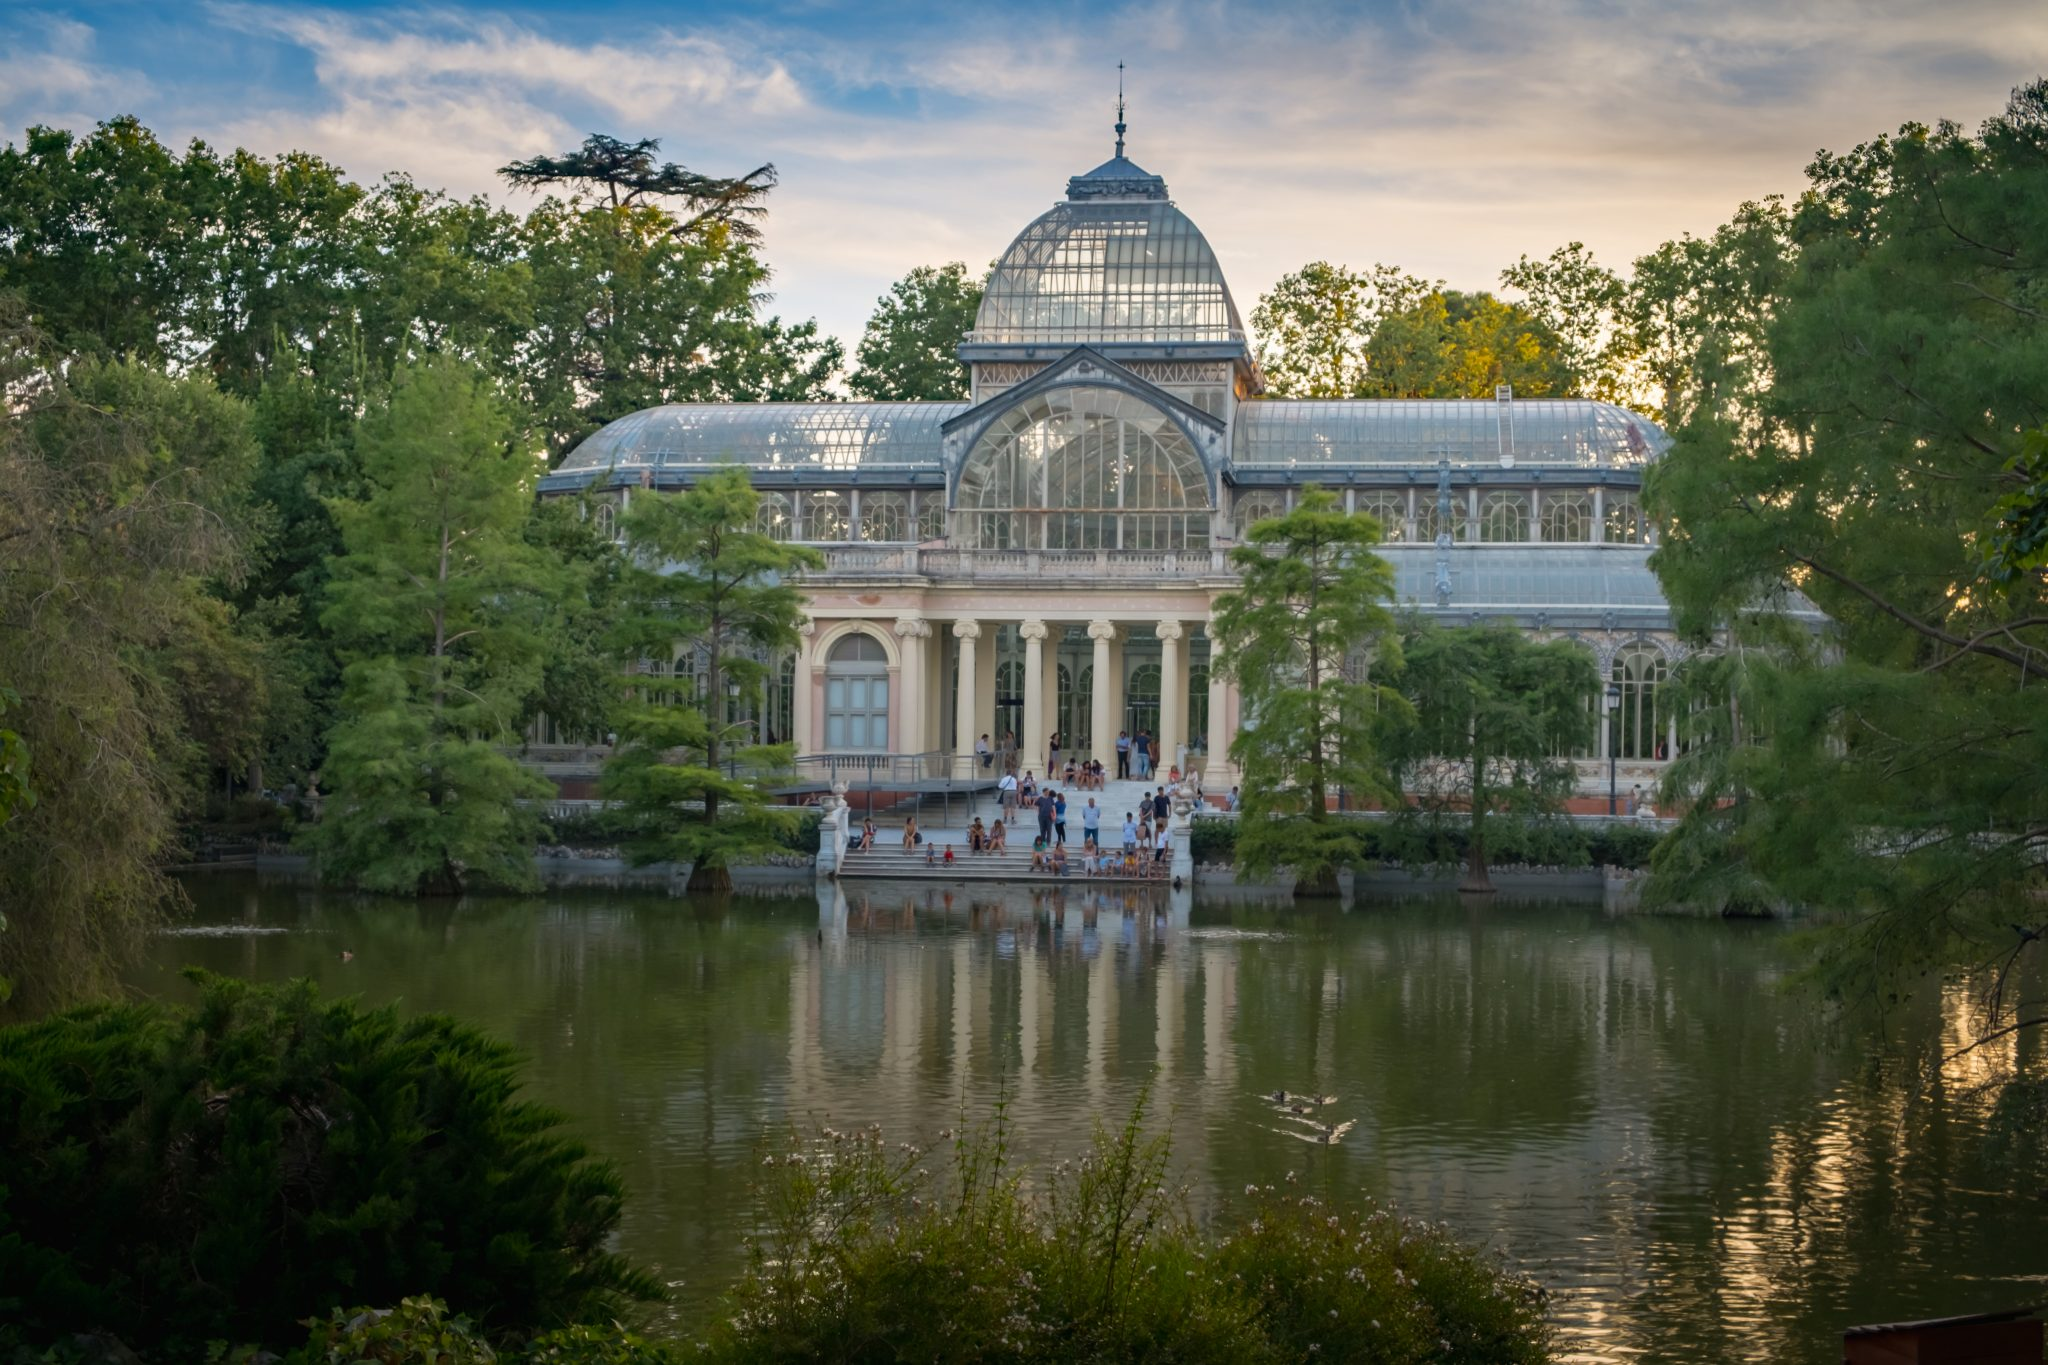 Palacio de cristal in Retiro Park Madrid photo by Jo Kassis